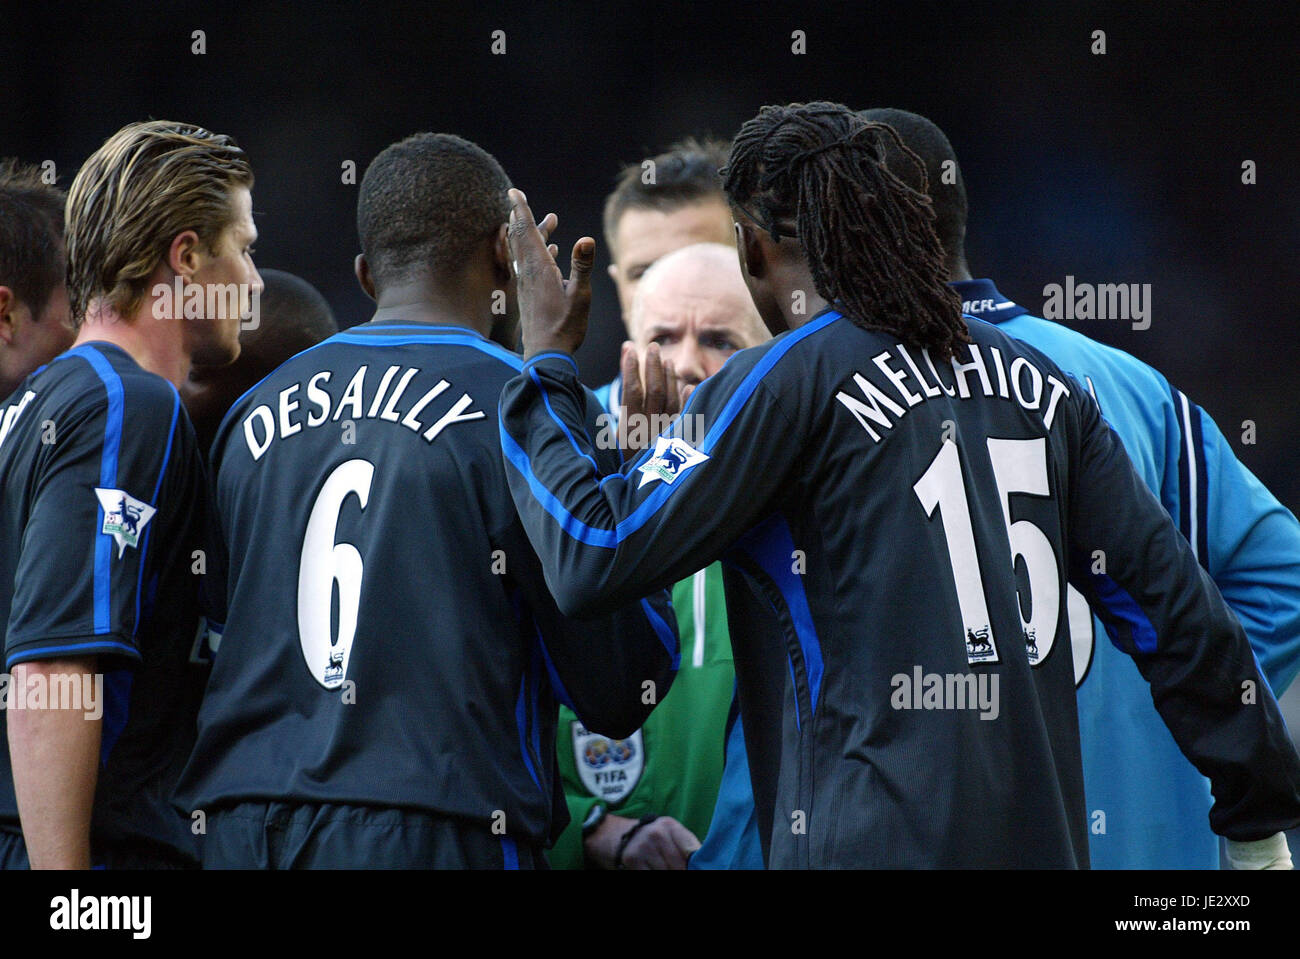 Chelsea football players images